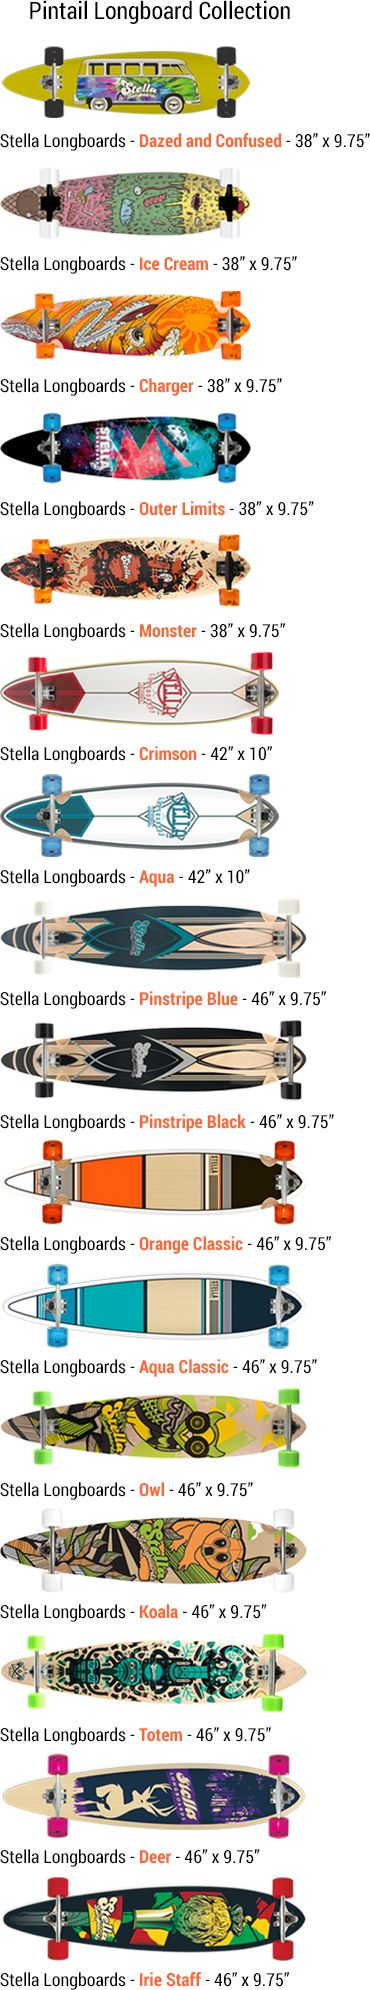 Pintail Longboard Collection from Stella Longboards #longboard @longboardsusa #pintail